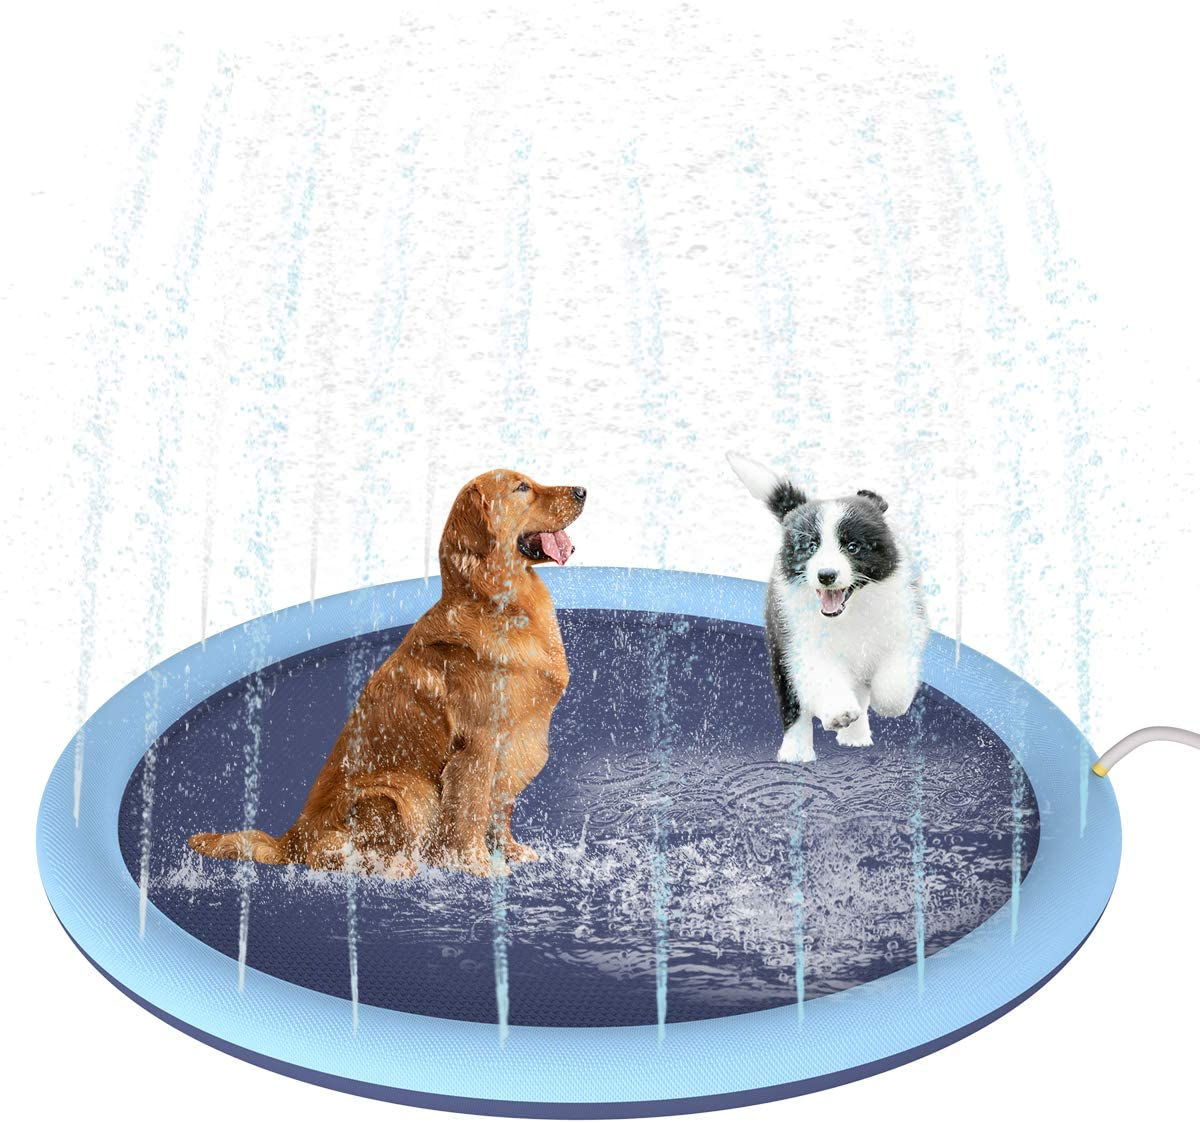 Yunnyp 59 PVC Pet Kids Water Spray Pad,Water Sprinkler Pad Play Mat Dog Bath Pool